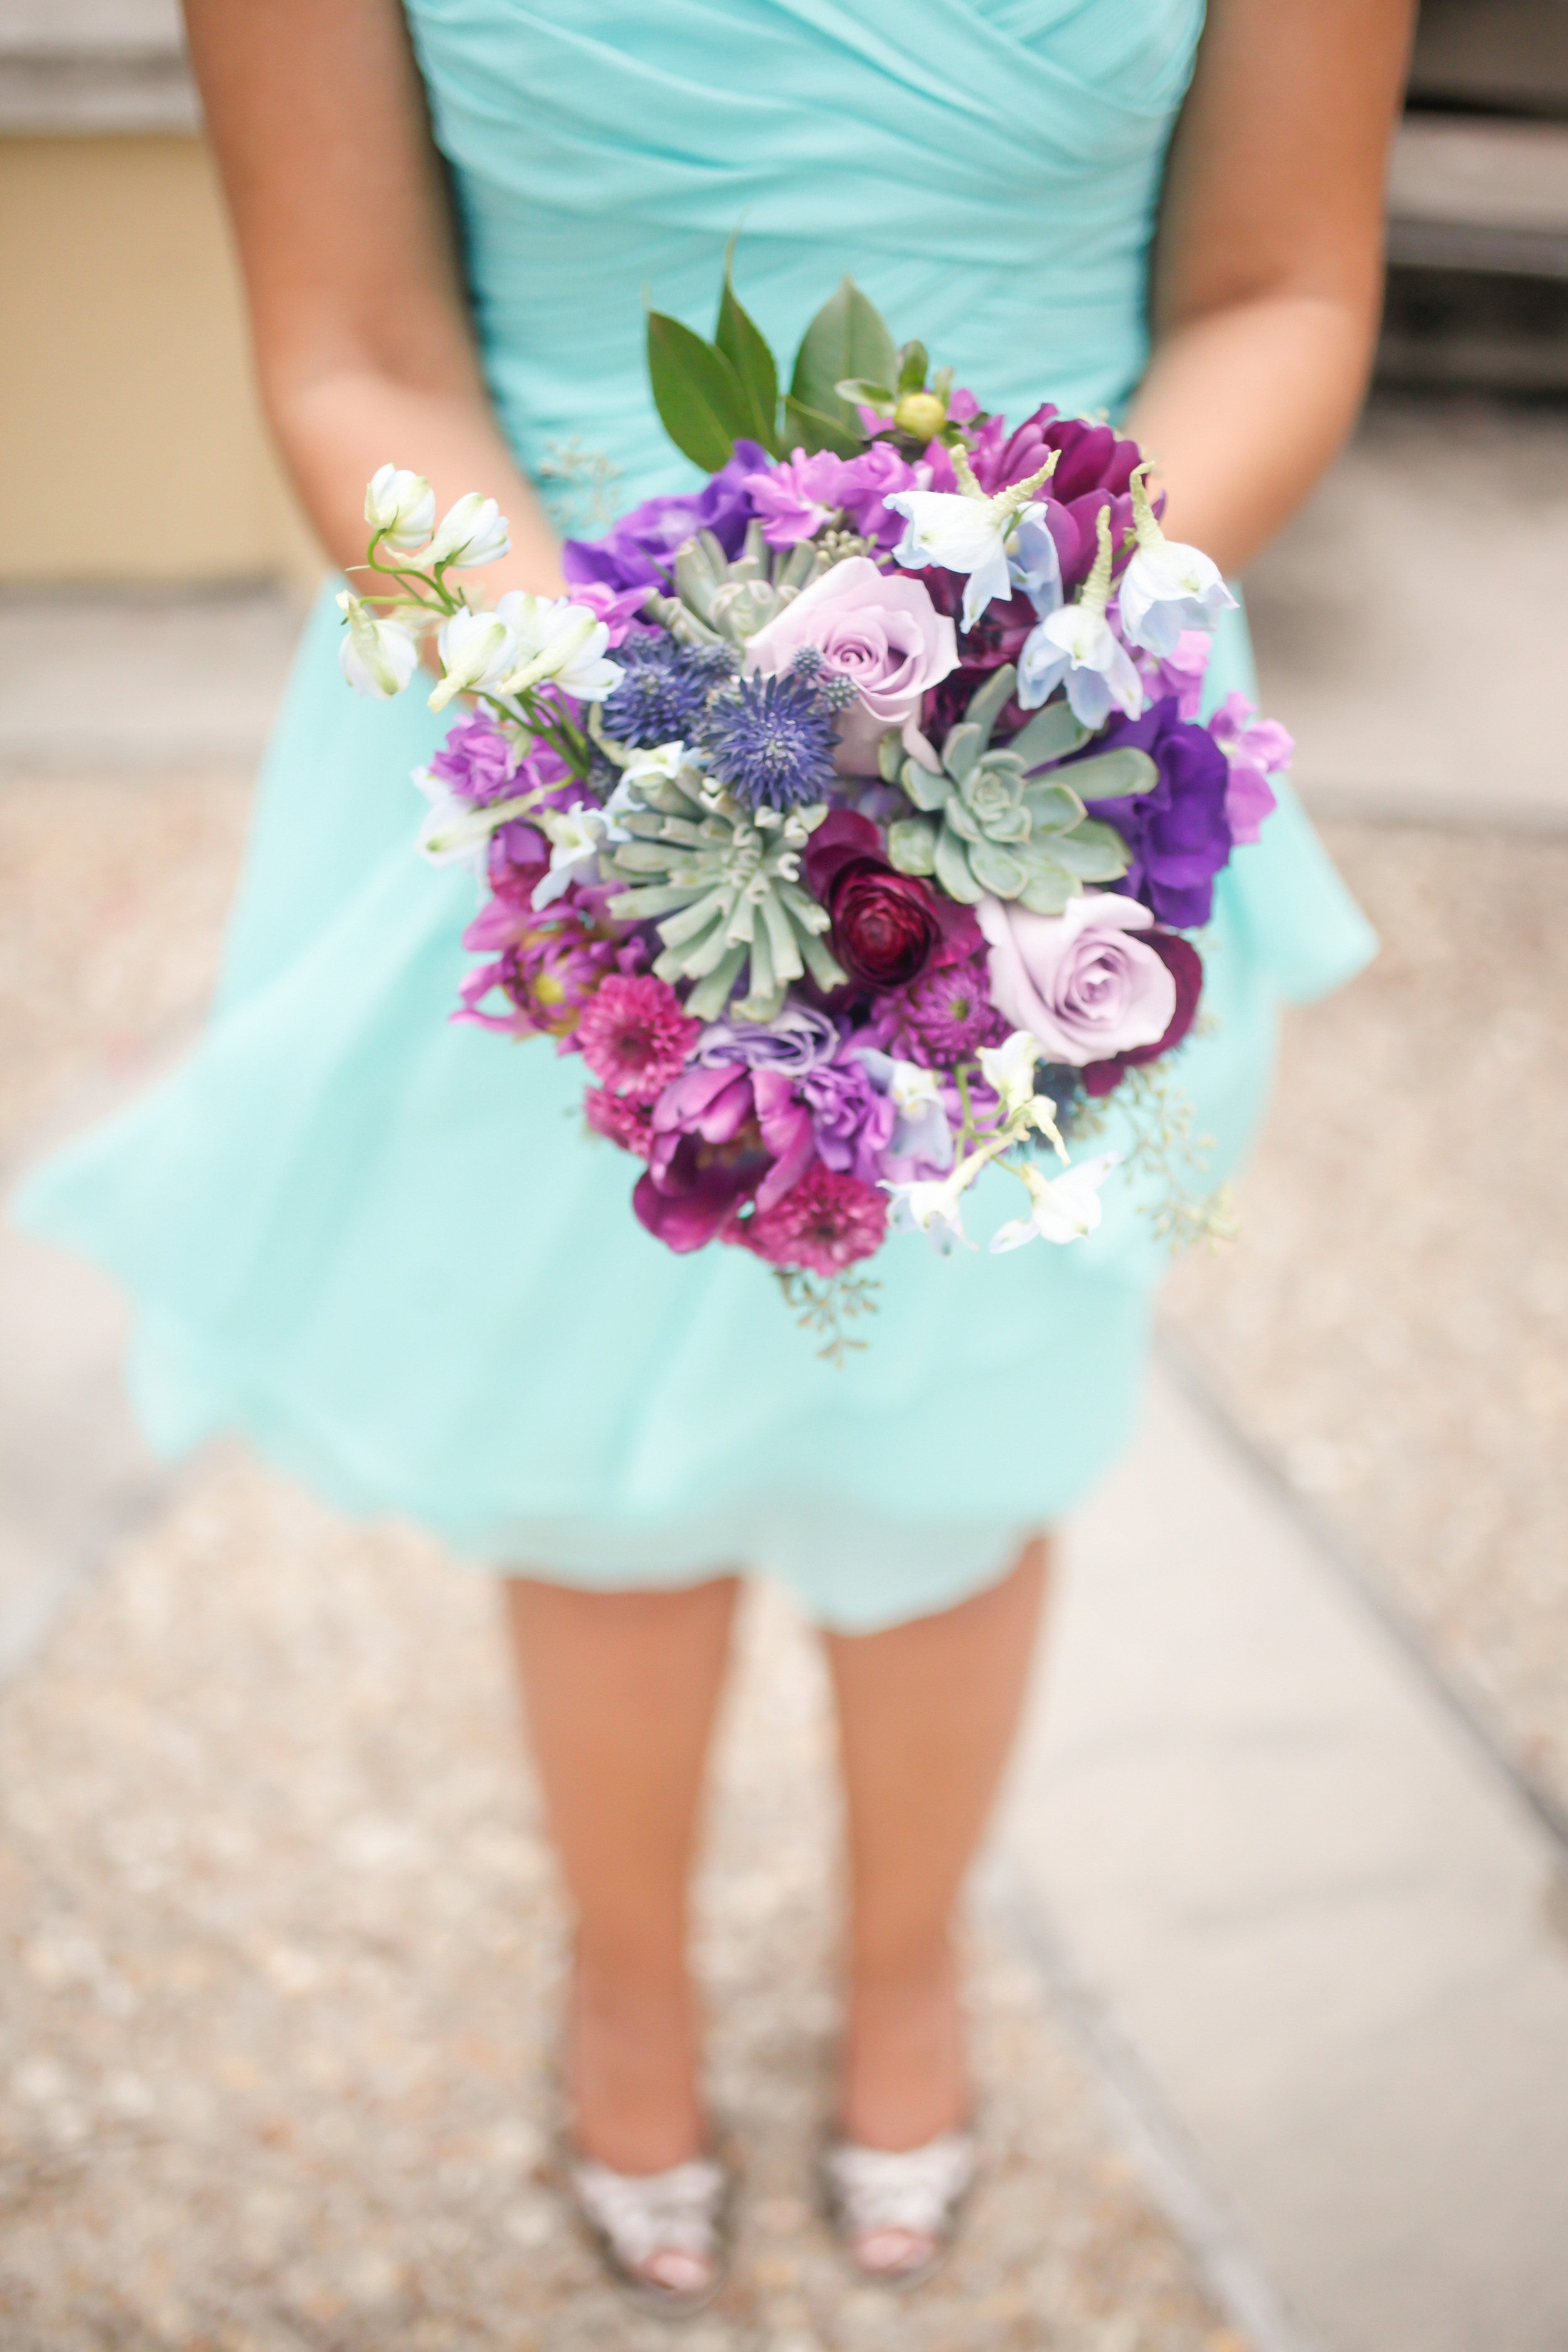 Bridesmaids carried bouquets in various shades of purple, accented with blue-hued succulents